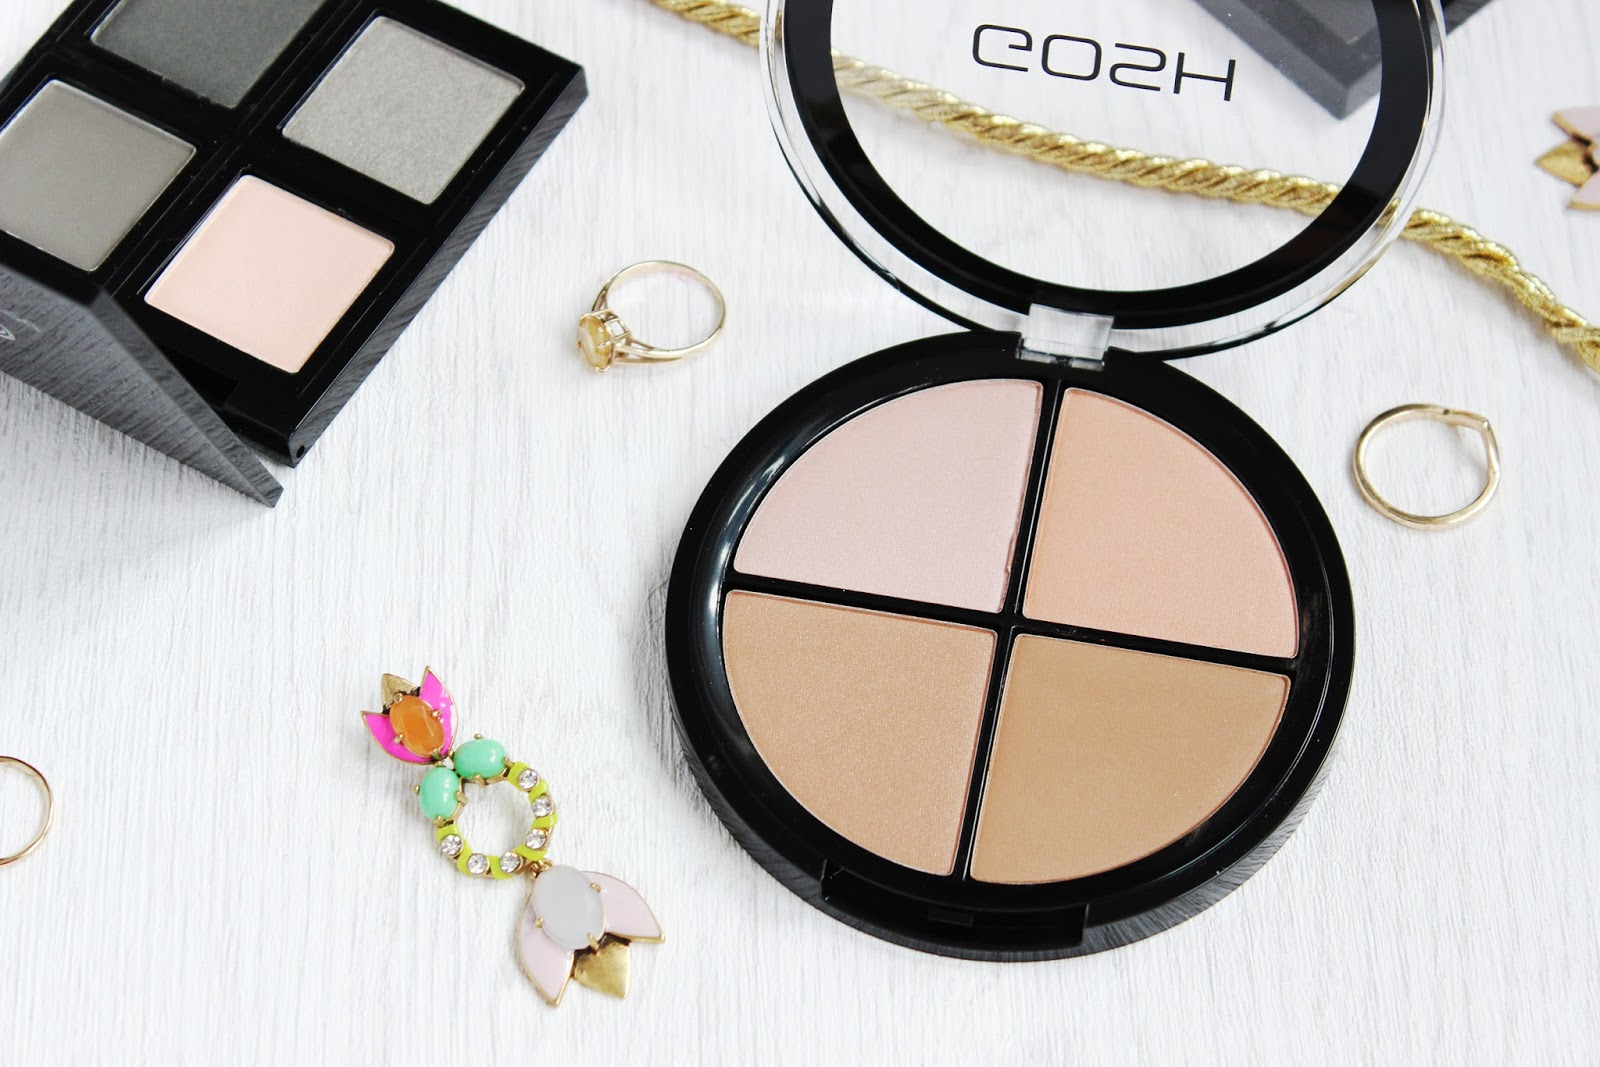 Must-have high street palettes from GOSH, The Body Shop and MUA - GOSH Contour and Strobe close up